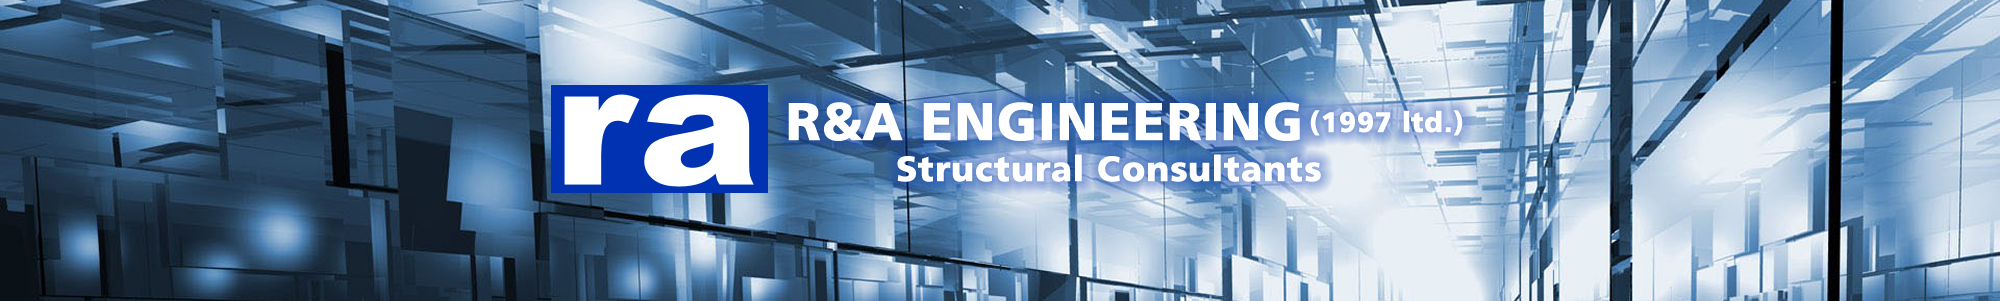 R&A Engineering